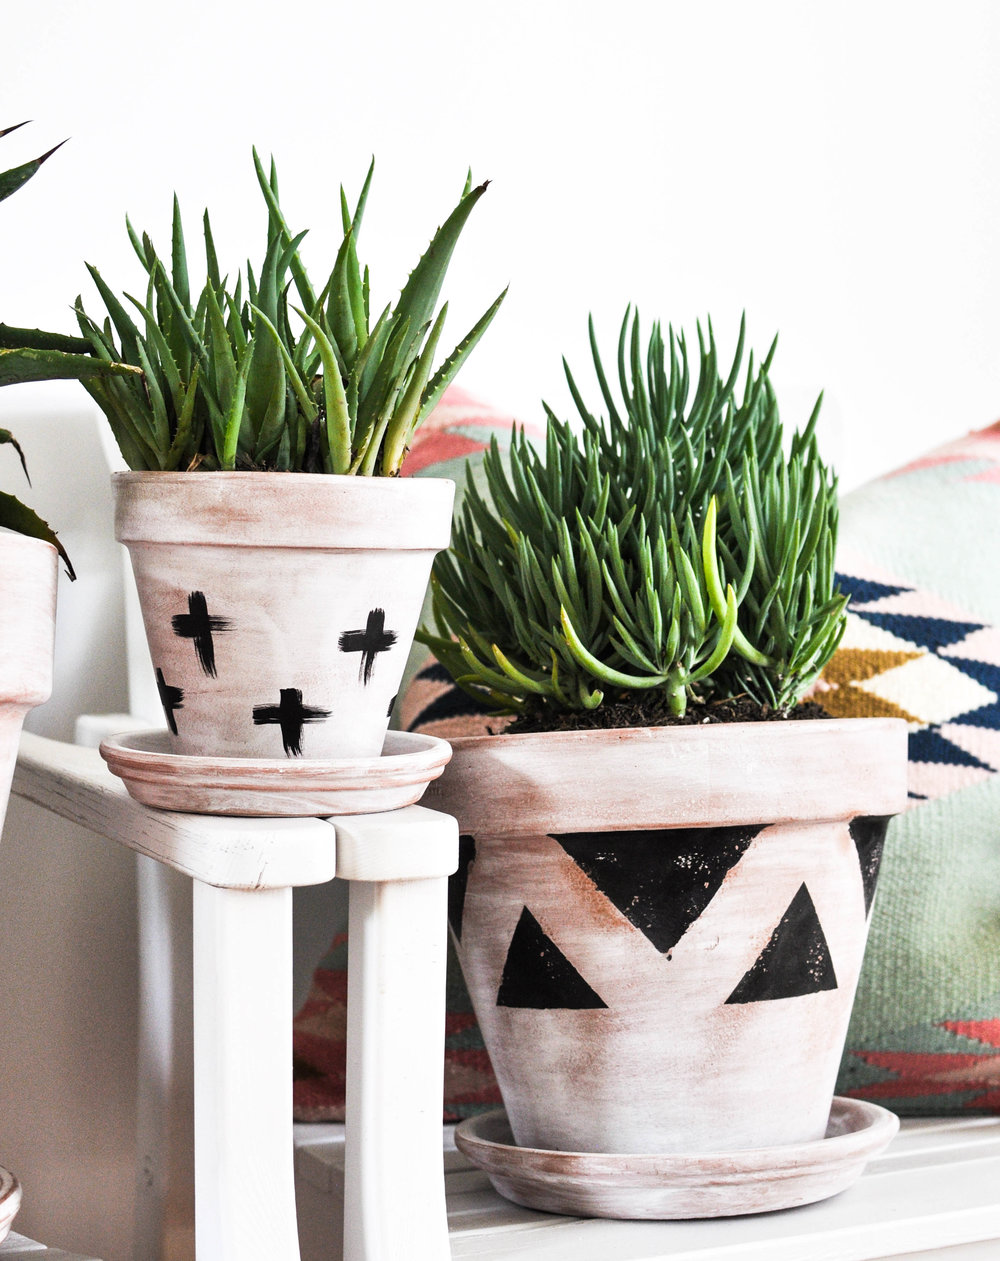 DIY whitewashed terra cotta pots